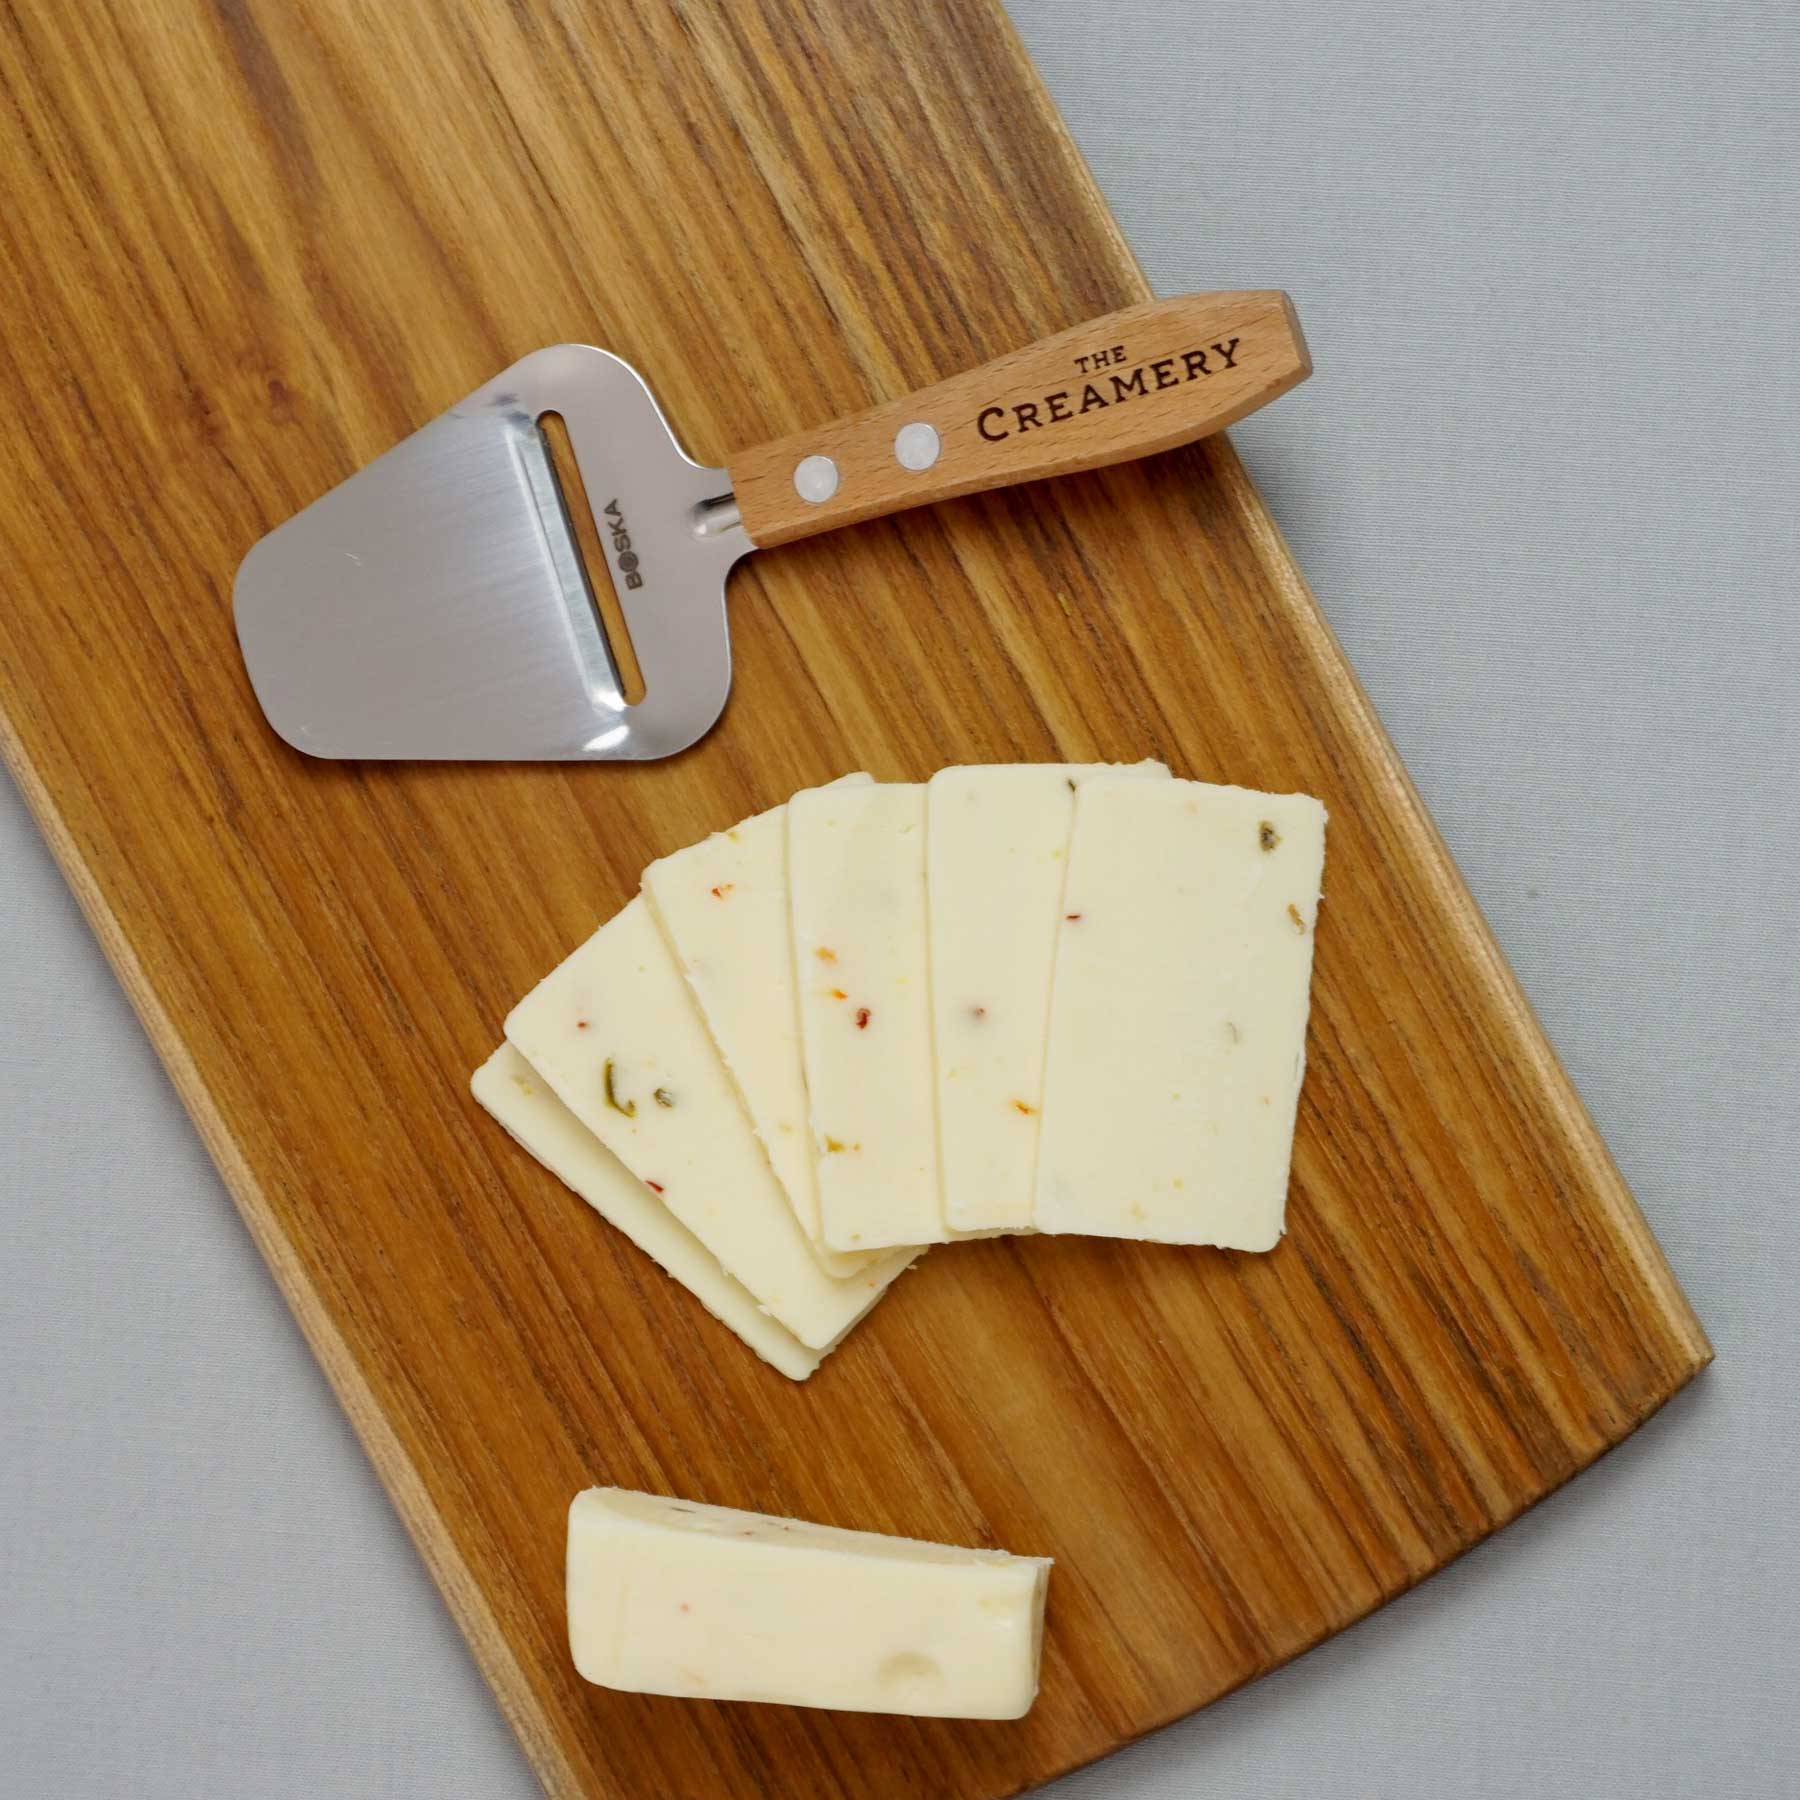 image of The Creamery Mini Wooden Cheese Planer with cheese